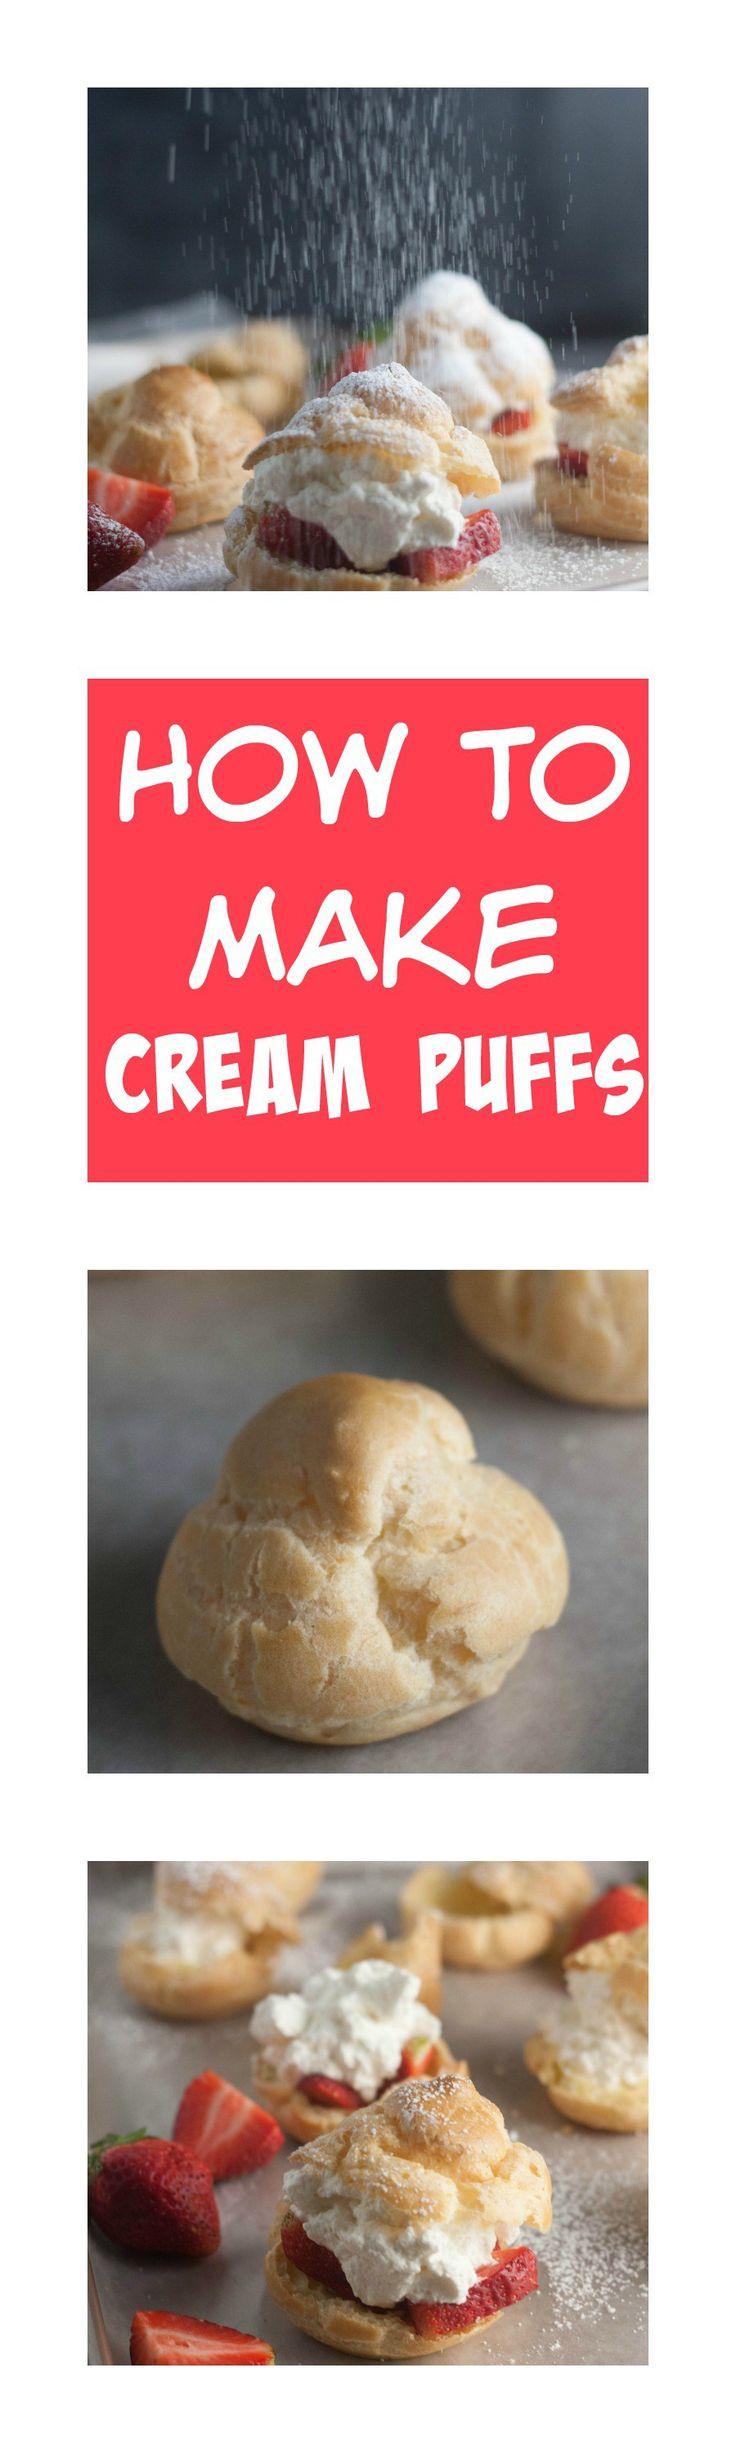 Learn how to make cream puffs with this step by step photo tutorial! These are so easy to make you will wonder why you don't make them more often!